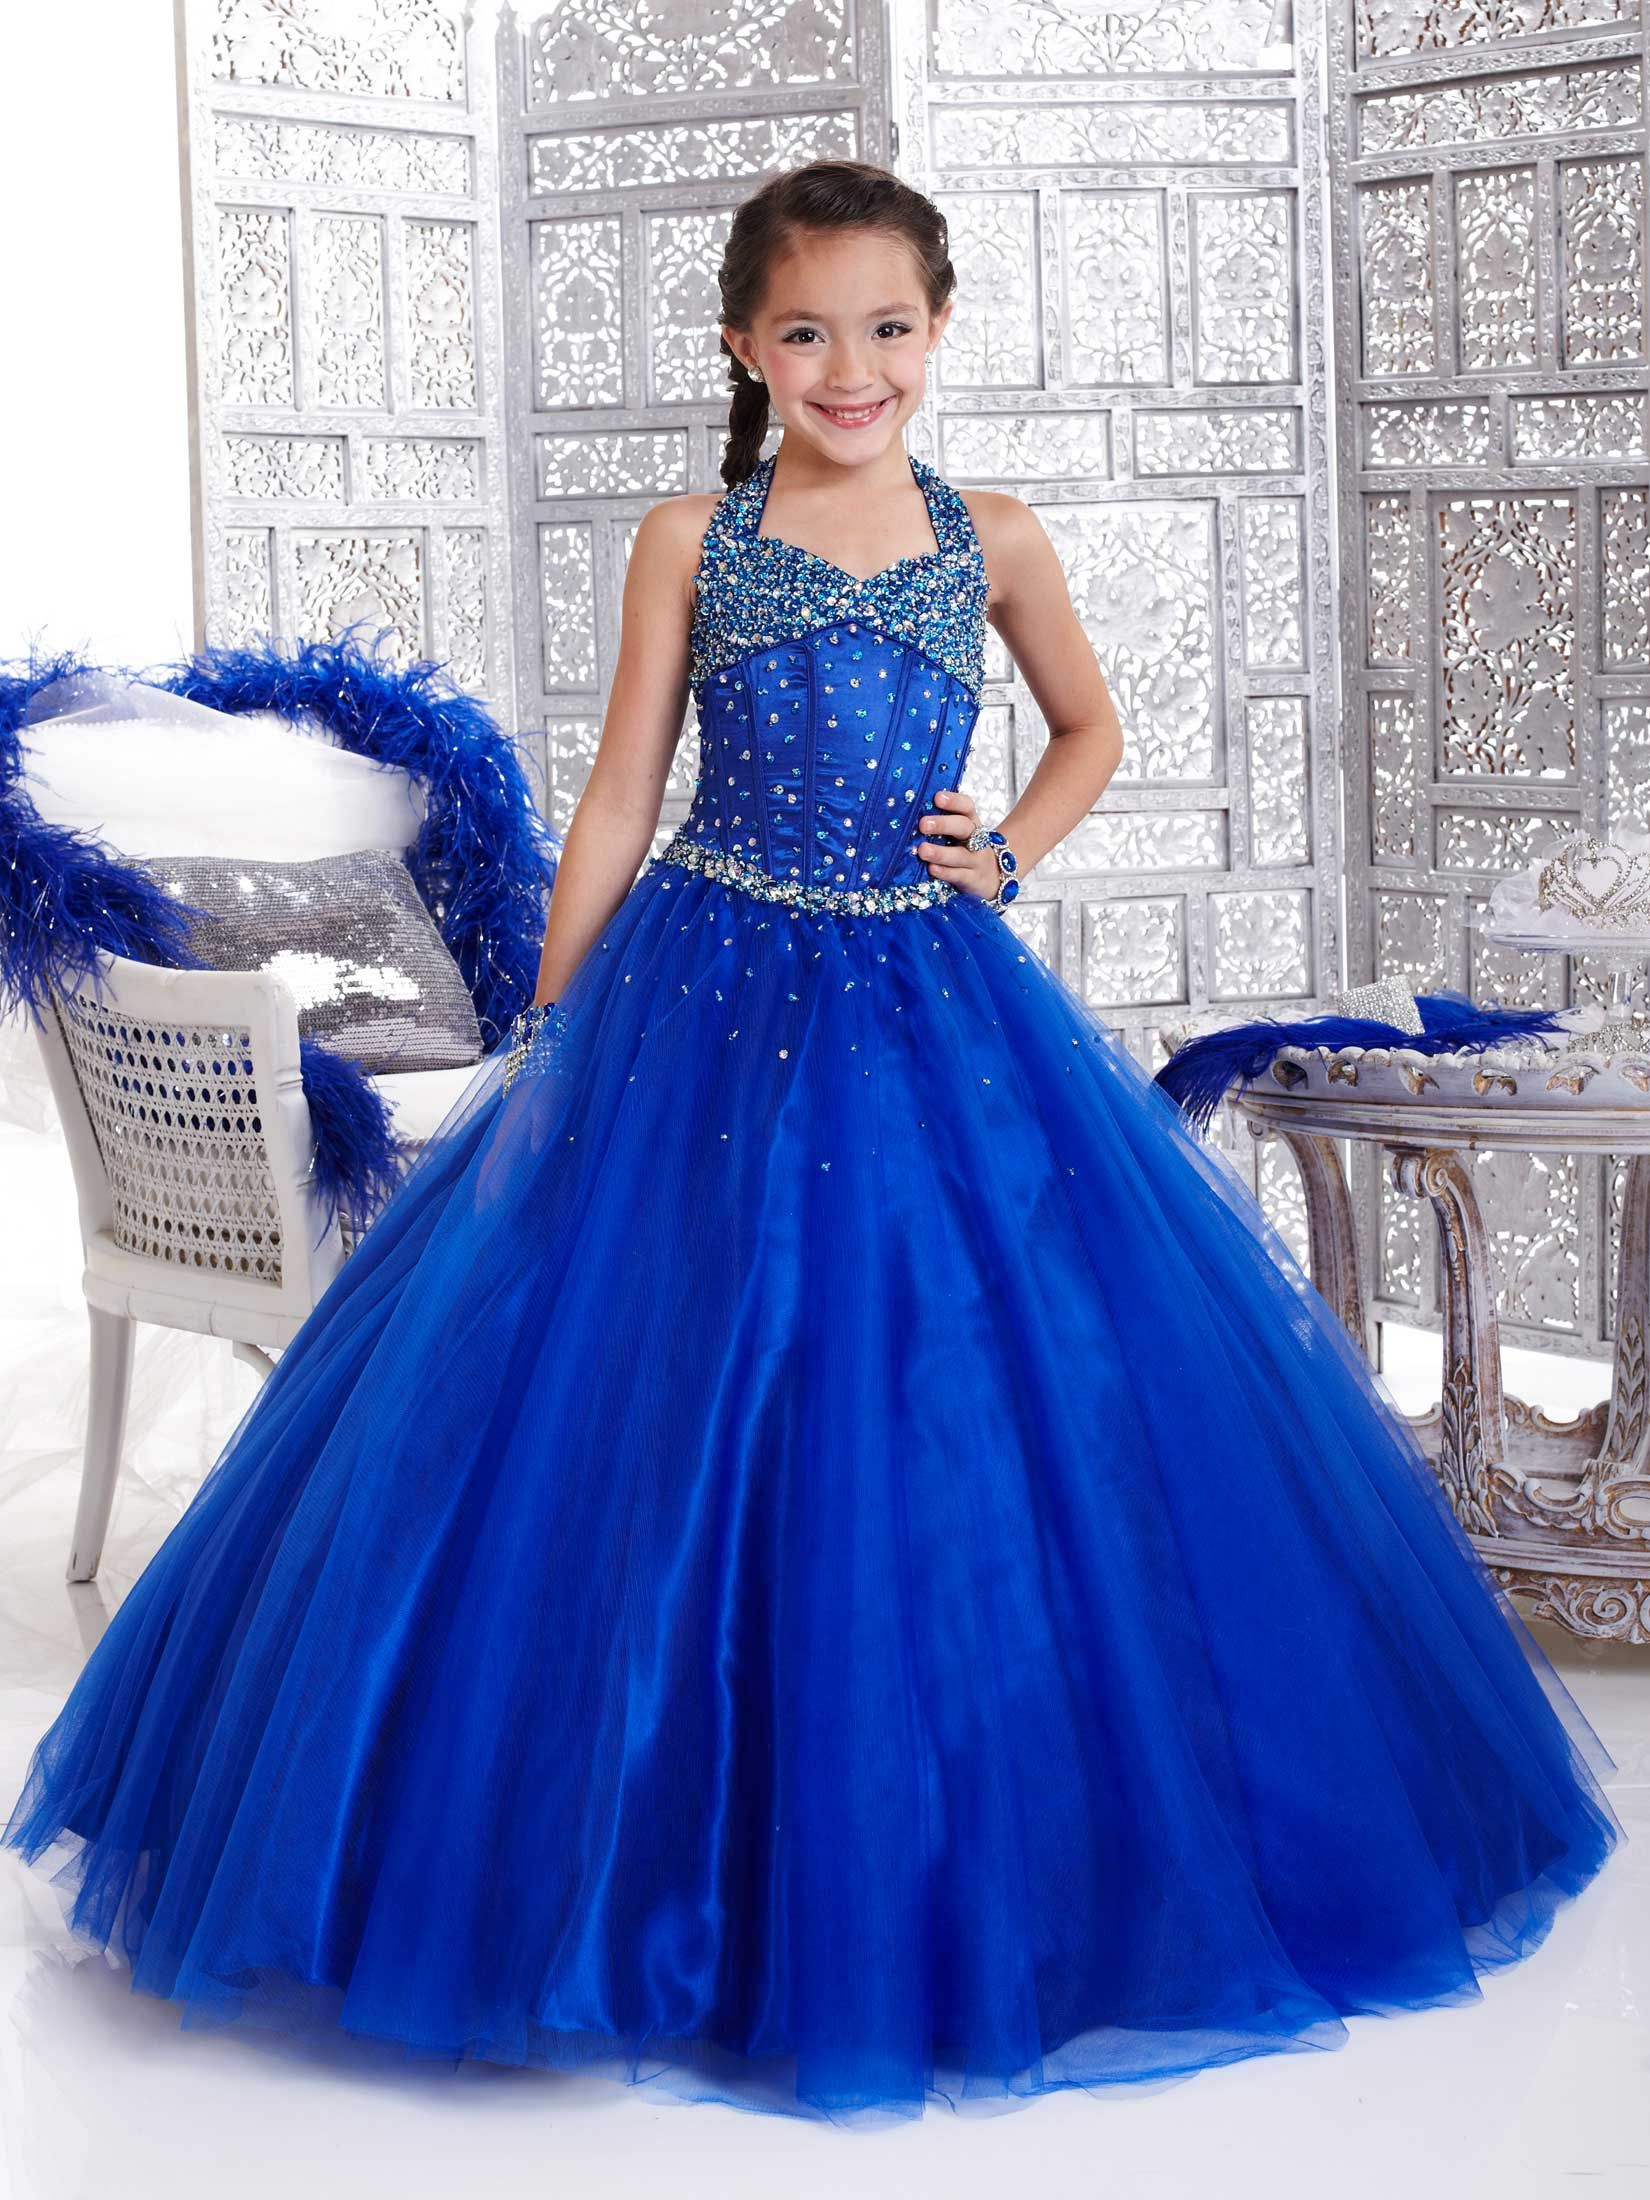 17 Best images about Ball gown for children on Pinterest | Girls ...